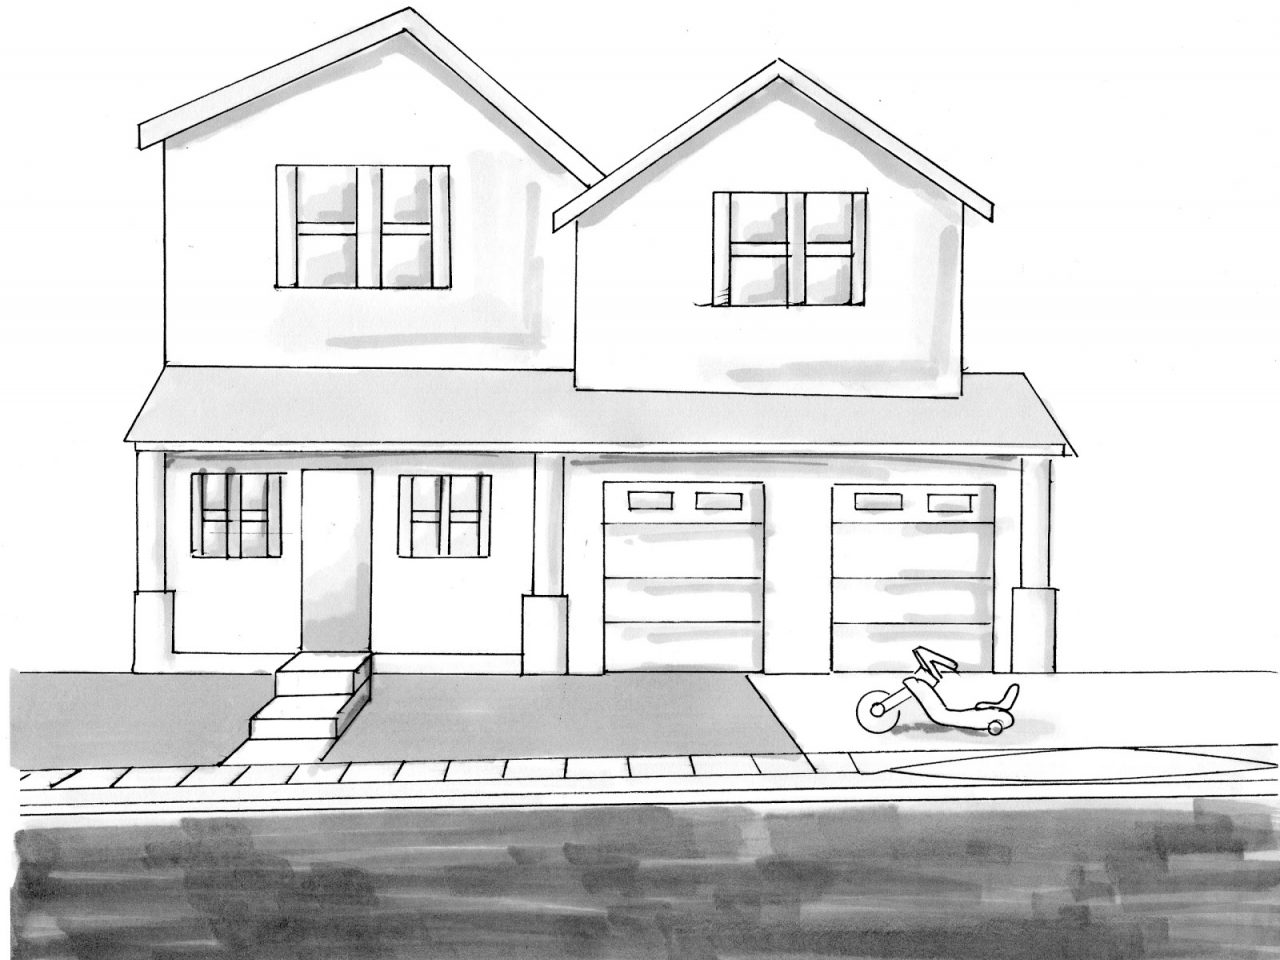 House Sketch Drawing Sketches, house drawings - Treesranch.com